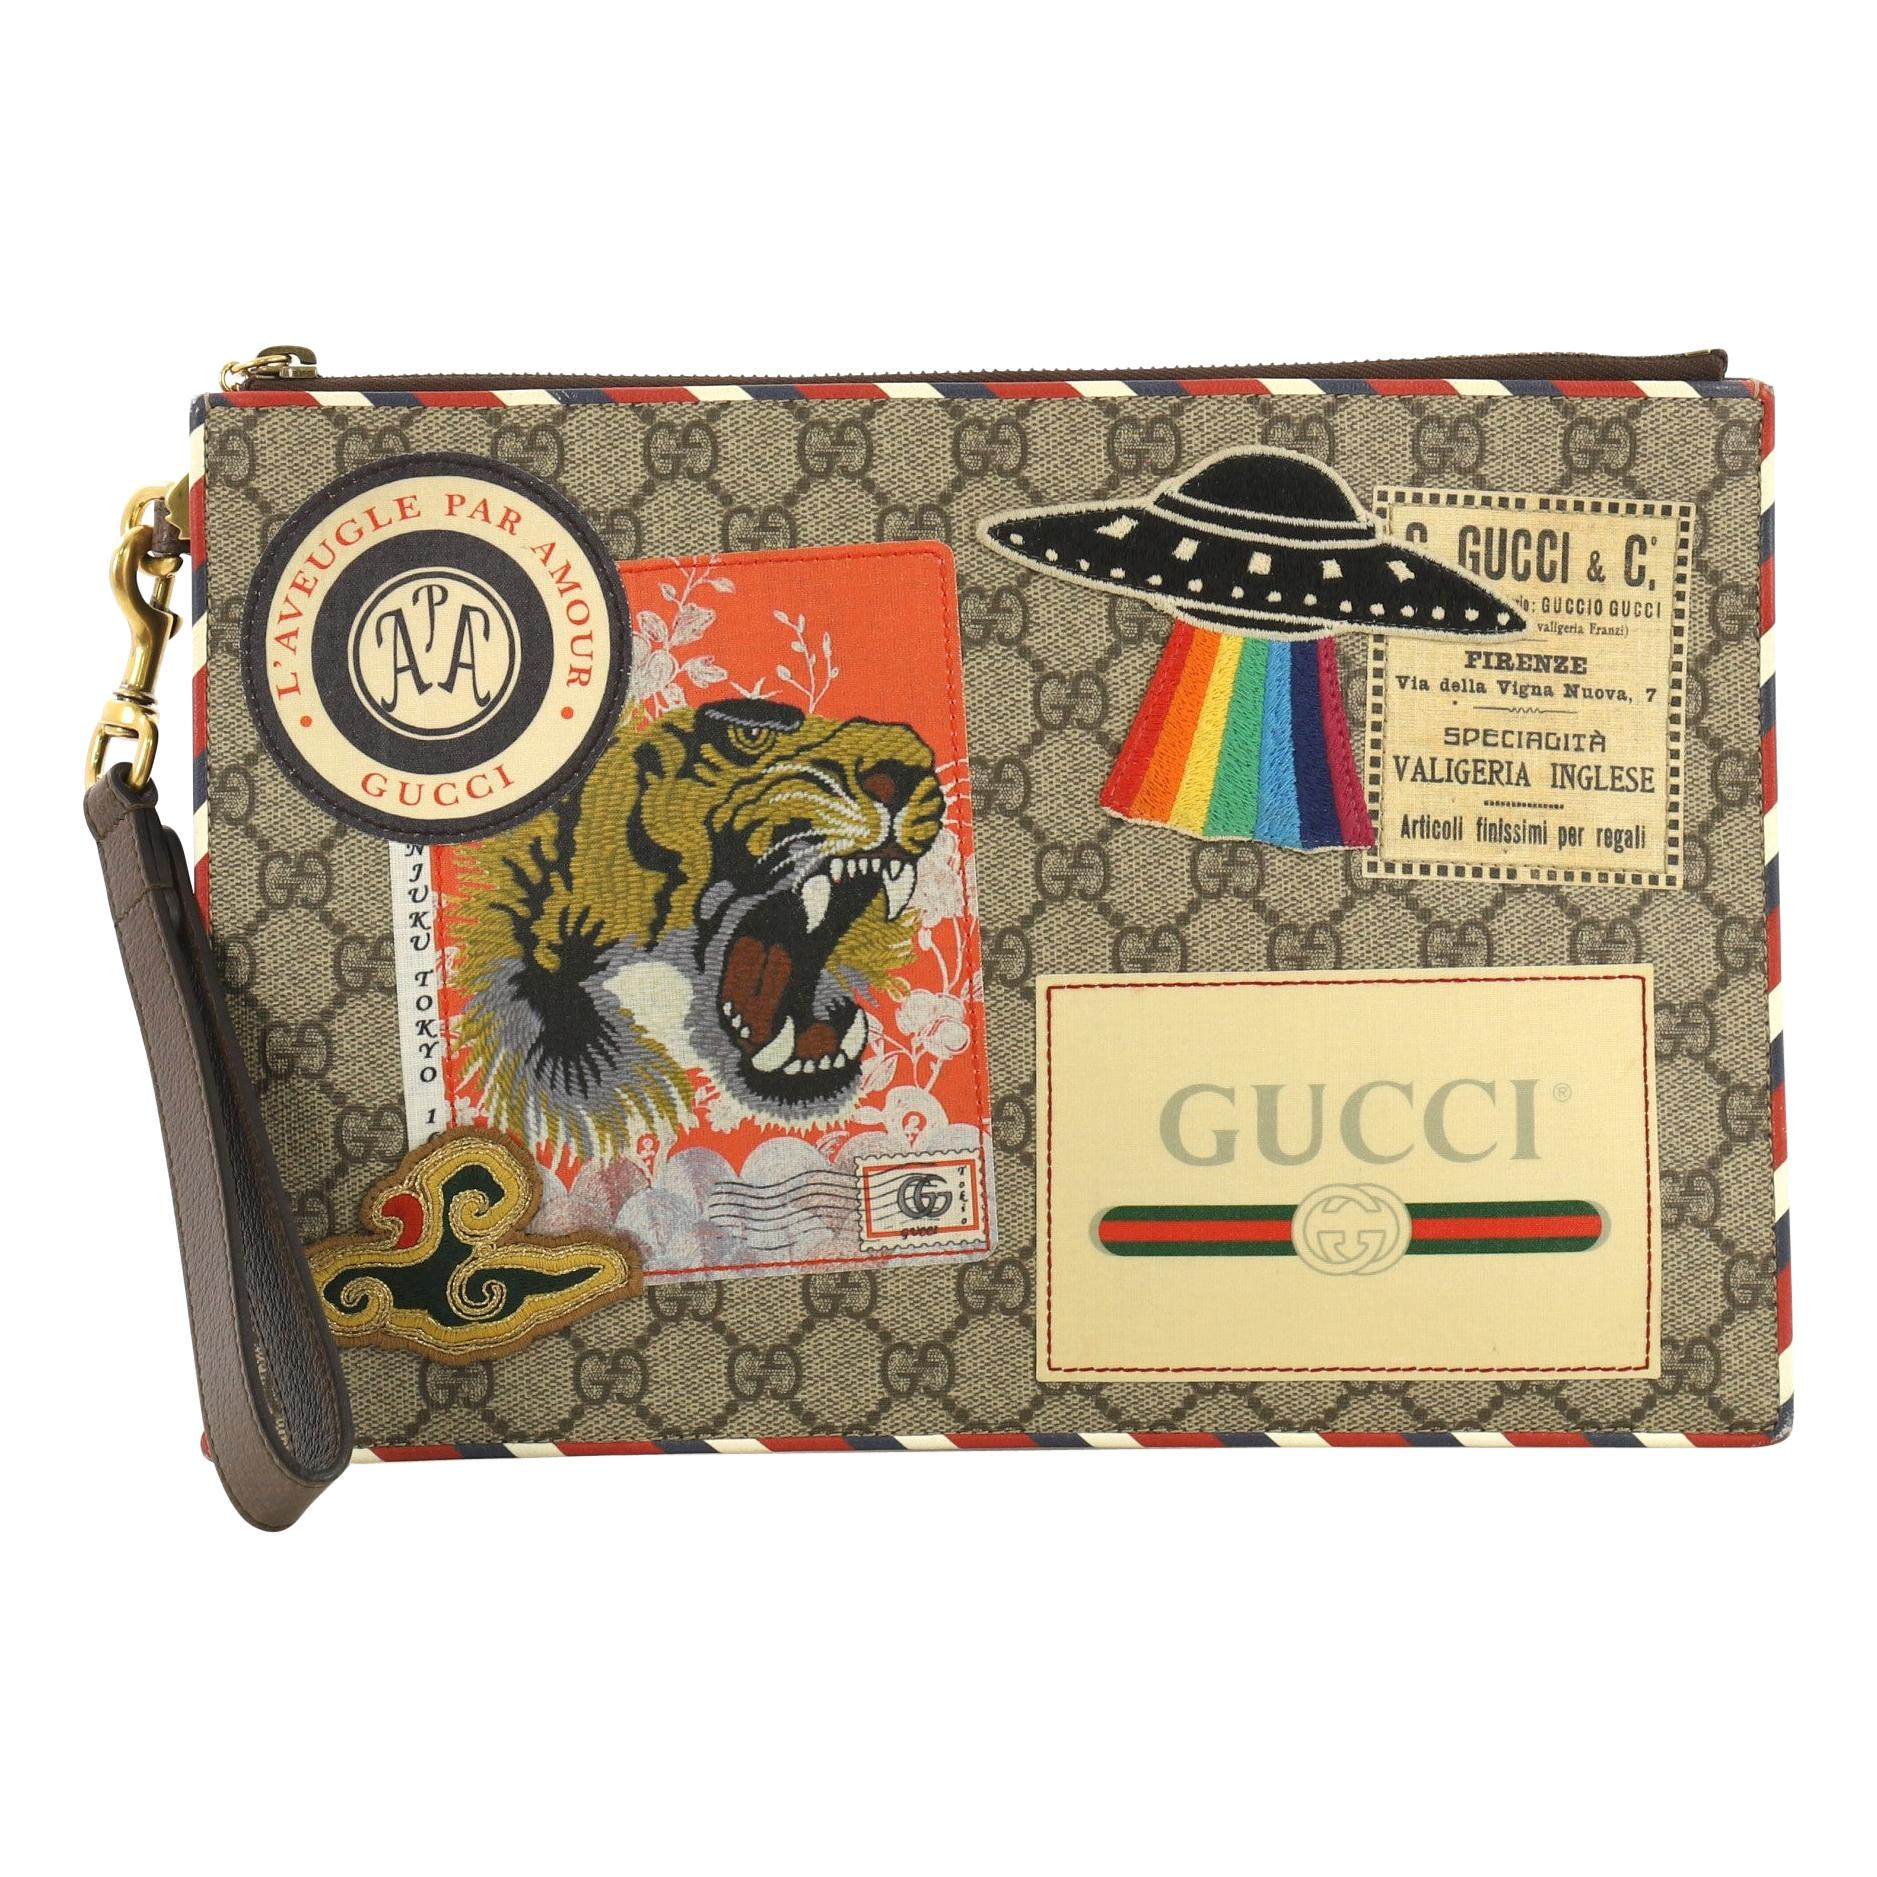 84d7a085a9a7df Vintage Gucci Wallets and Small Accessories - 99 For Sale at 1stdibs